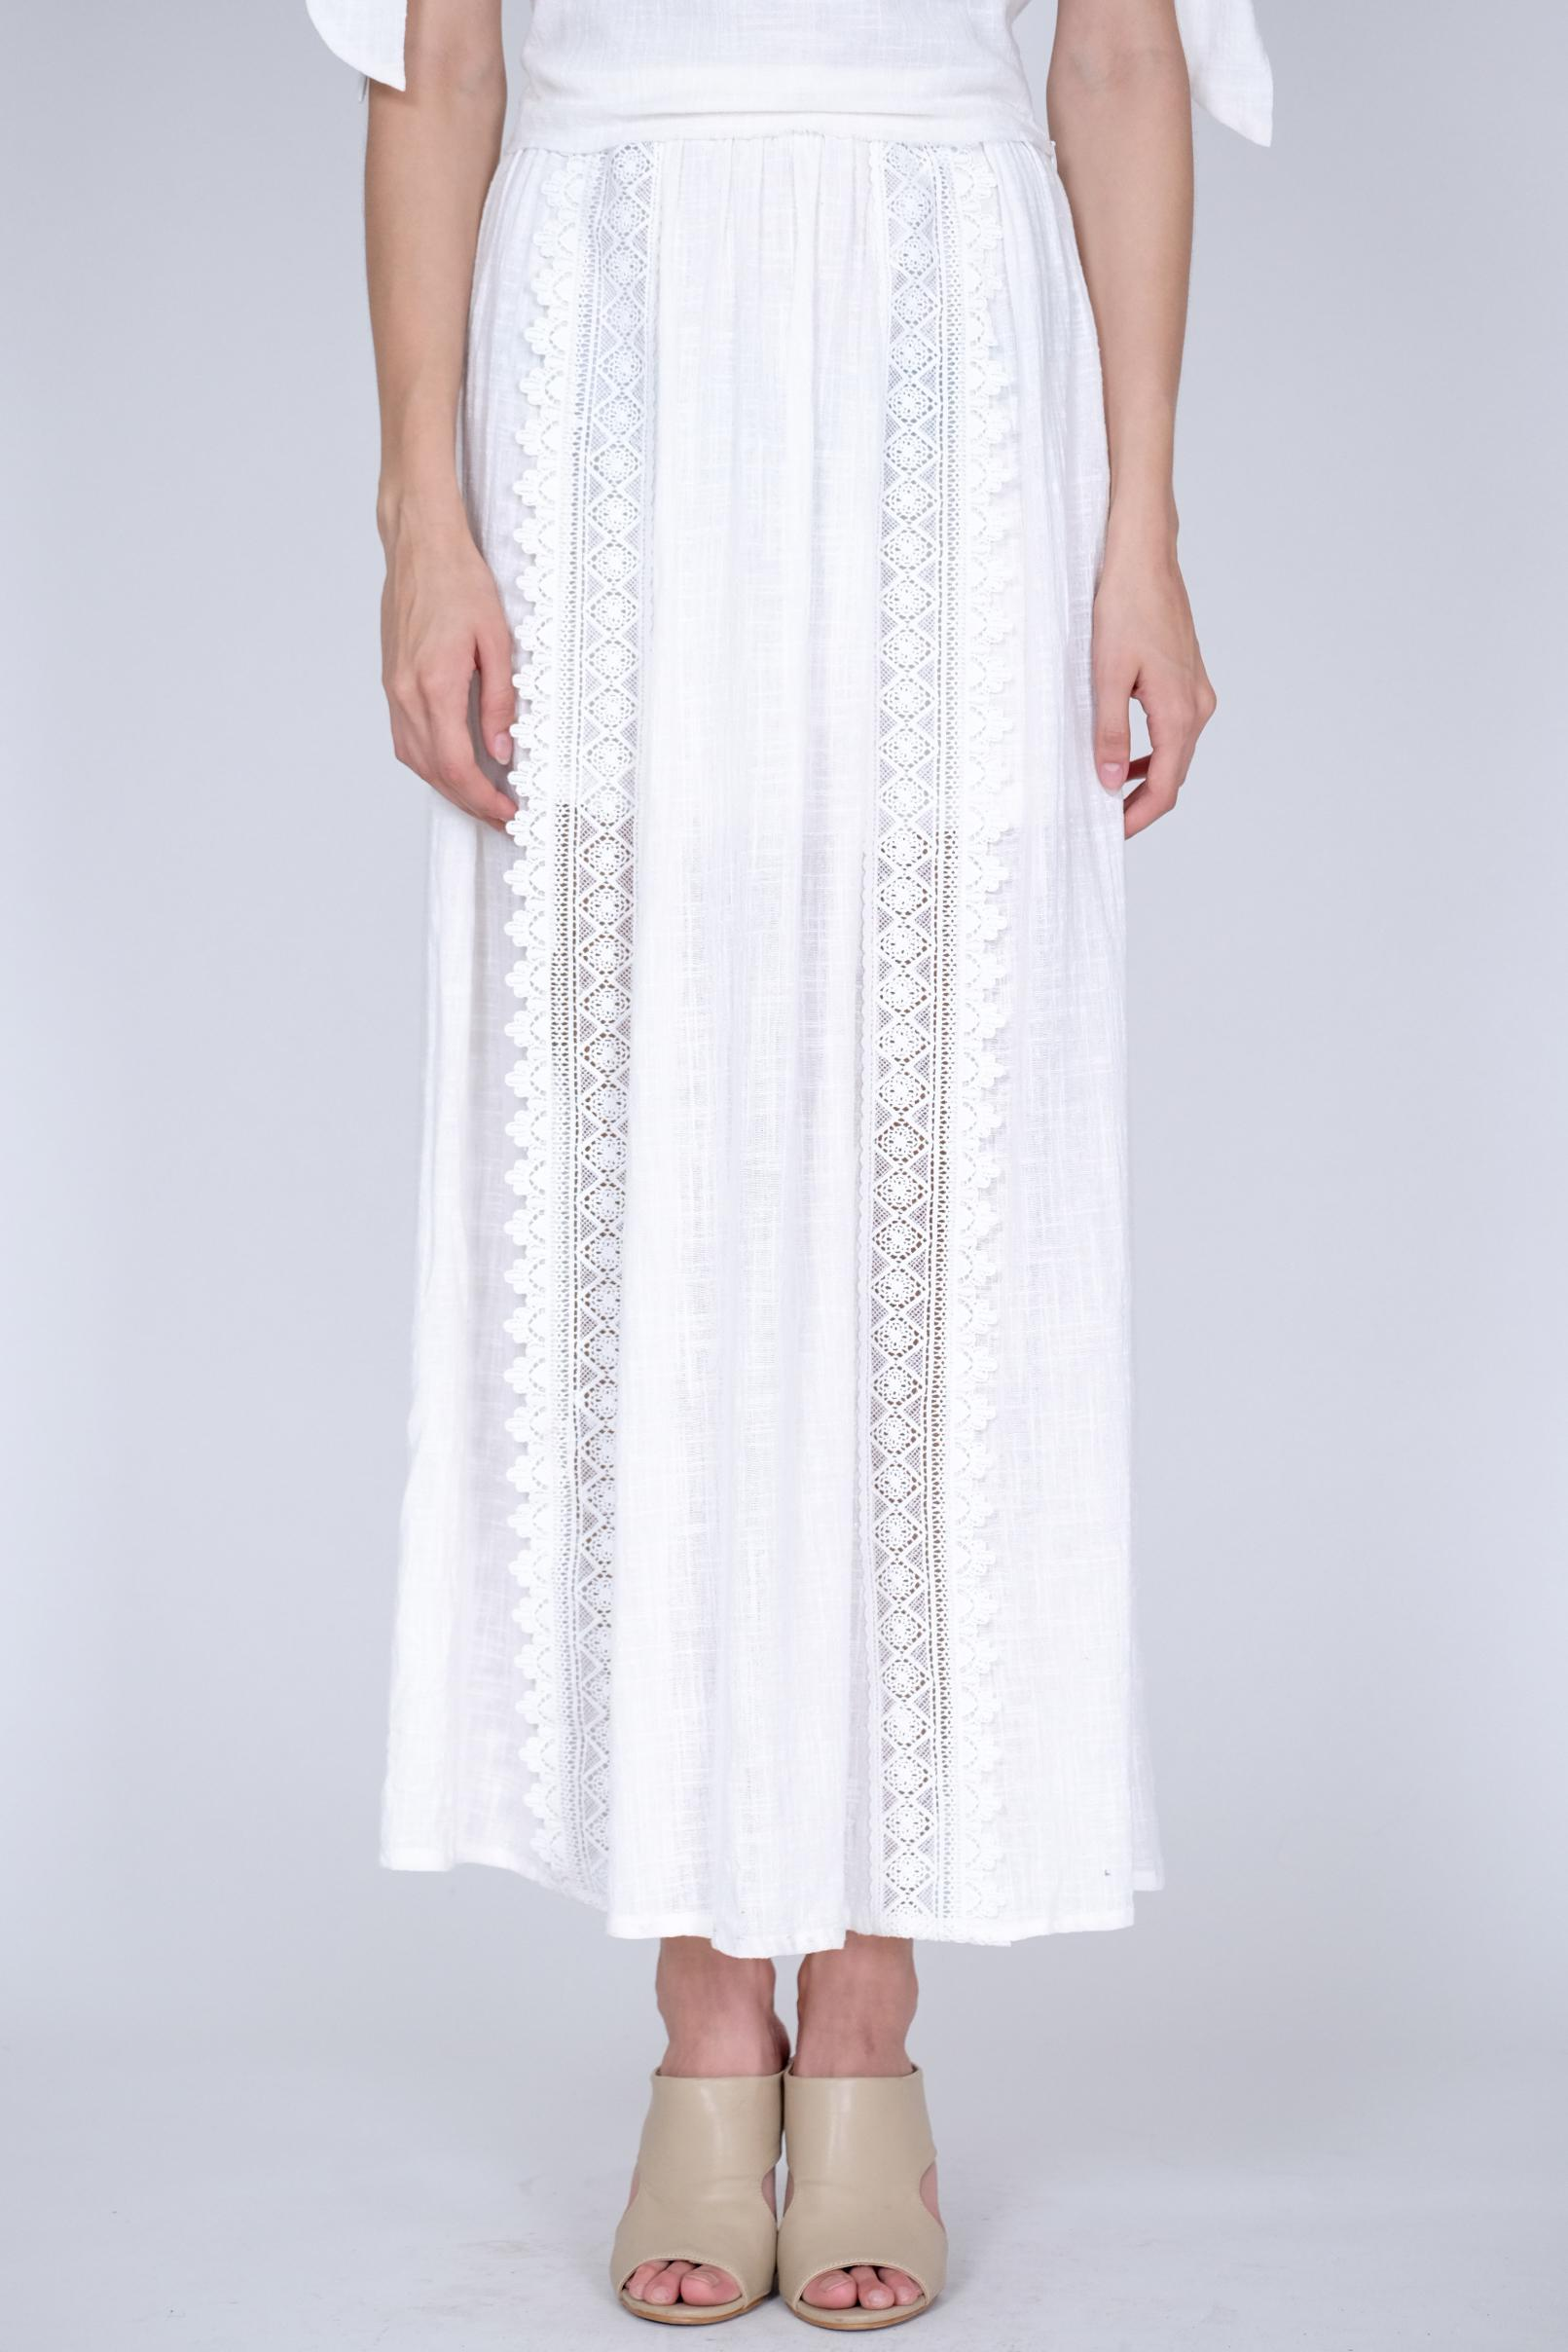 Jordana Skirt In White